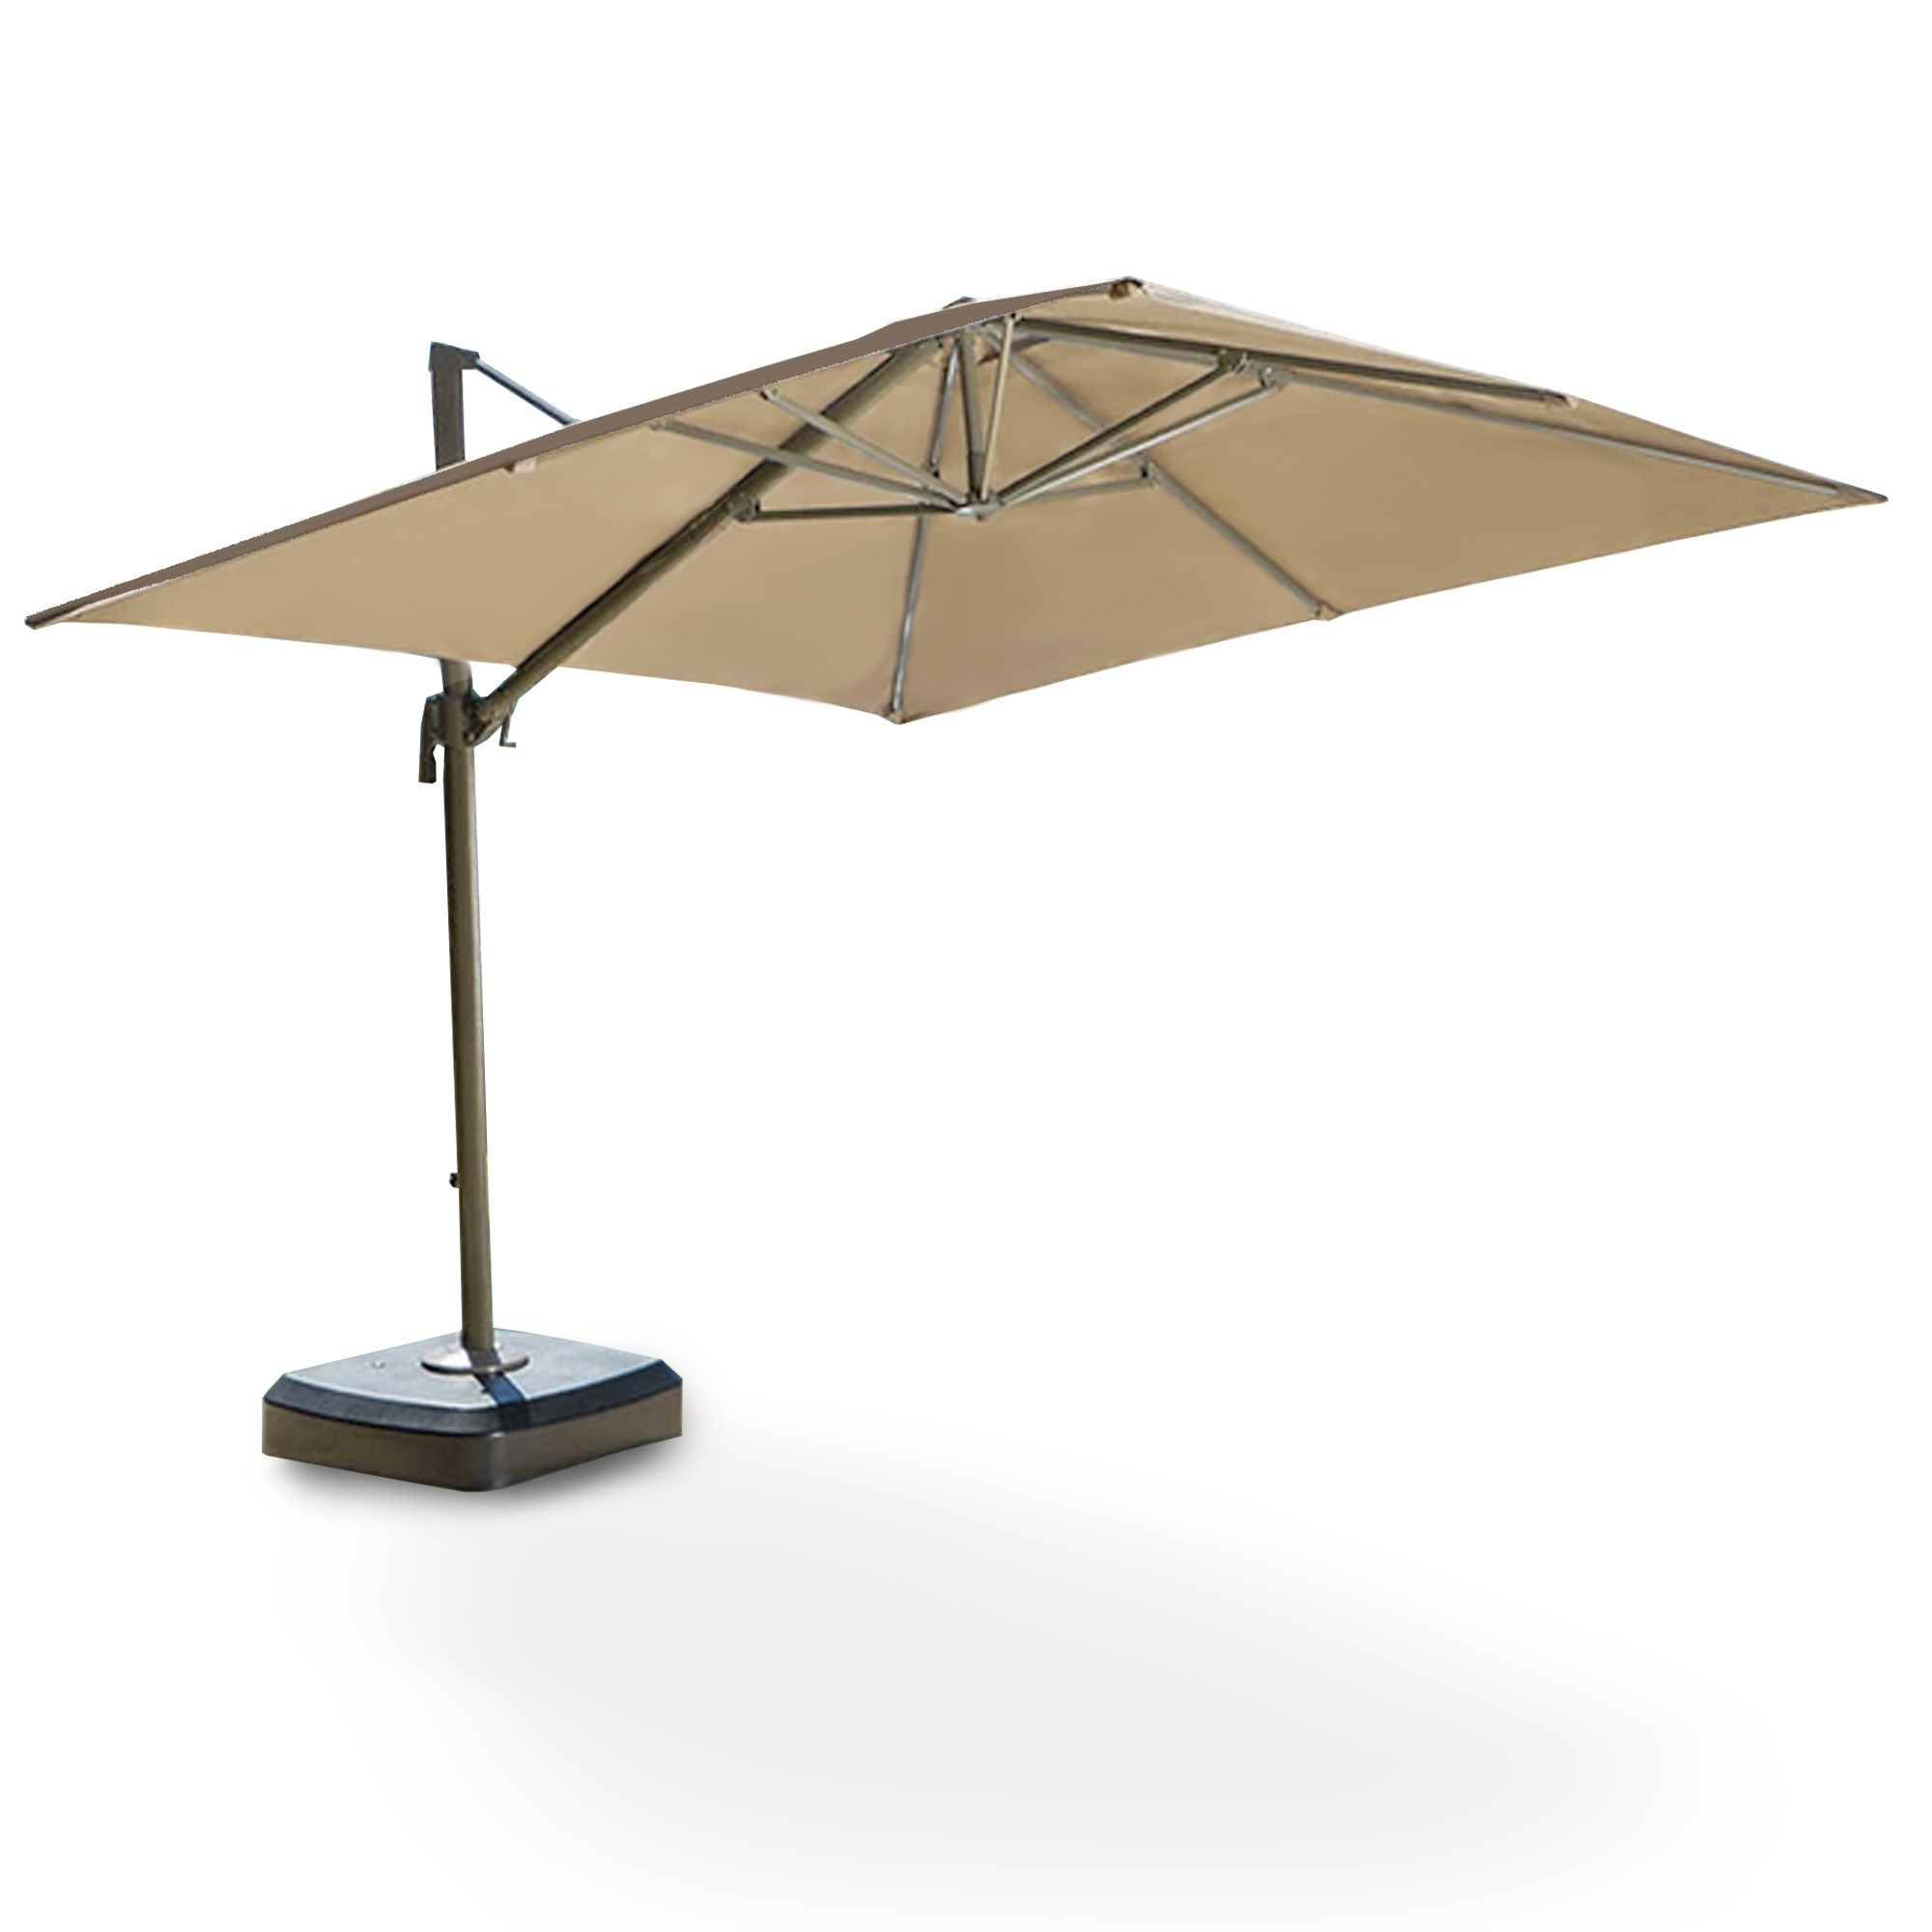 2019 Costco Replacement Umbrella Canopy – Garden Winds Intended For Kohls Patio Umbrellas (View 2 of 20)